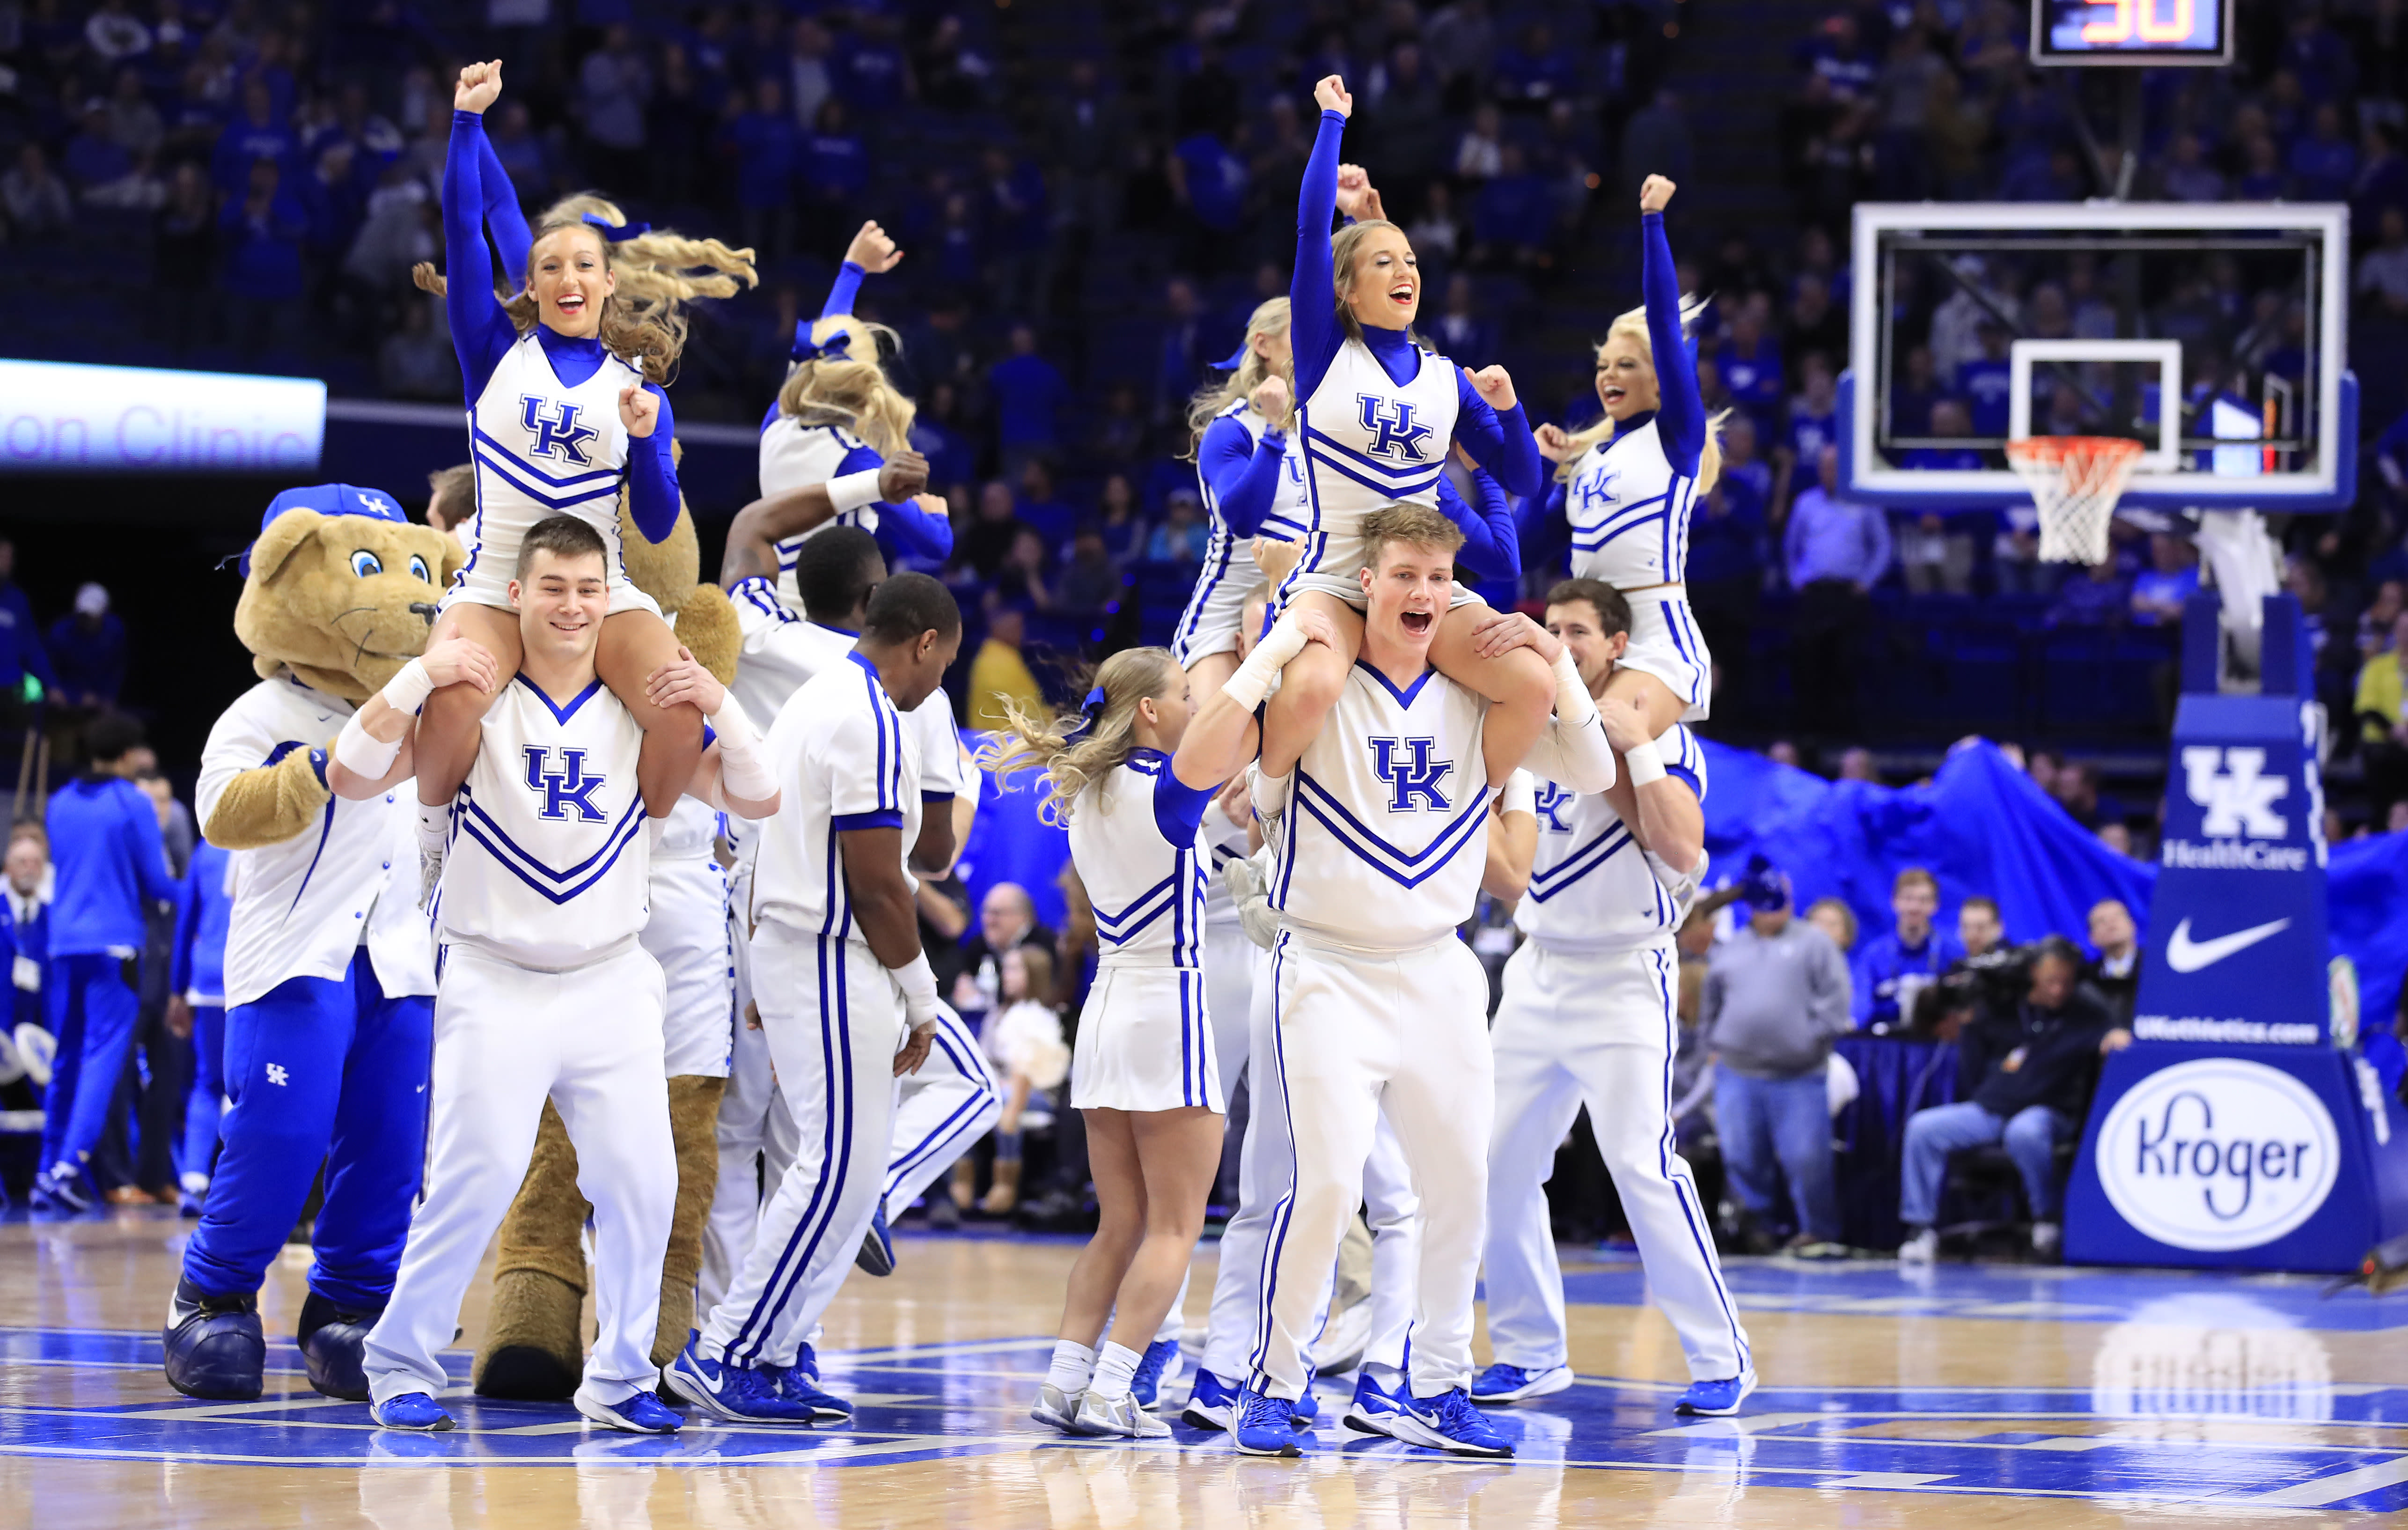 University of Kentucky fires cheerleading coaches after